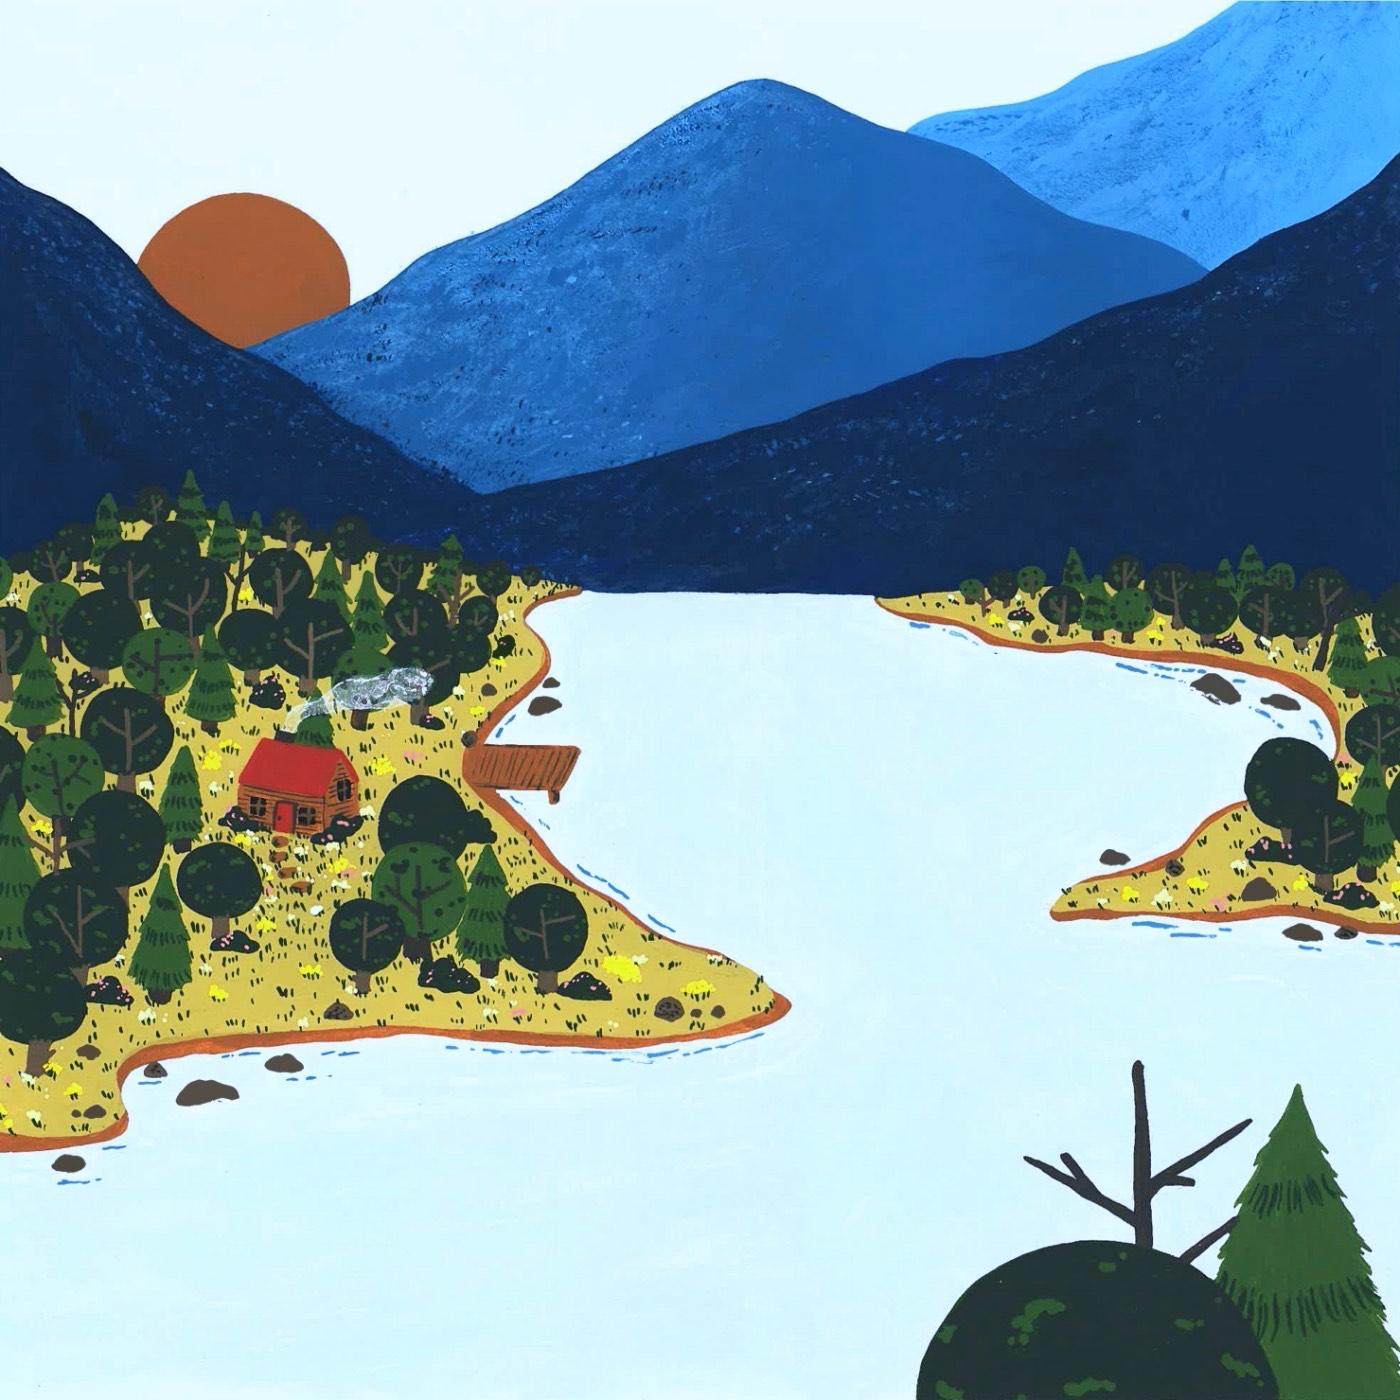 A graphic design of a river next to a mountain peak and forest. A small tent sits by the side of the river.